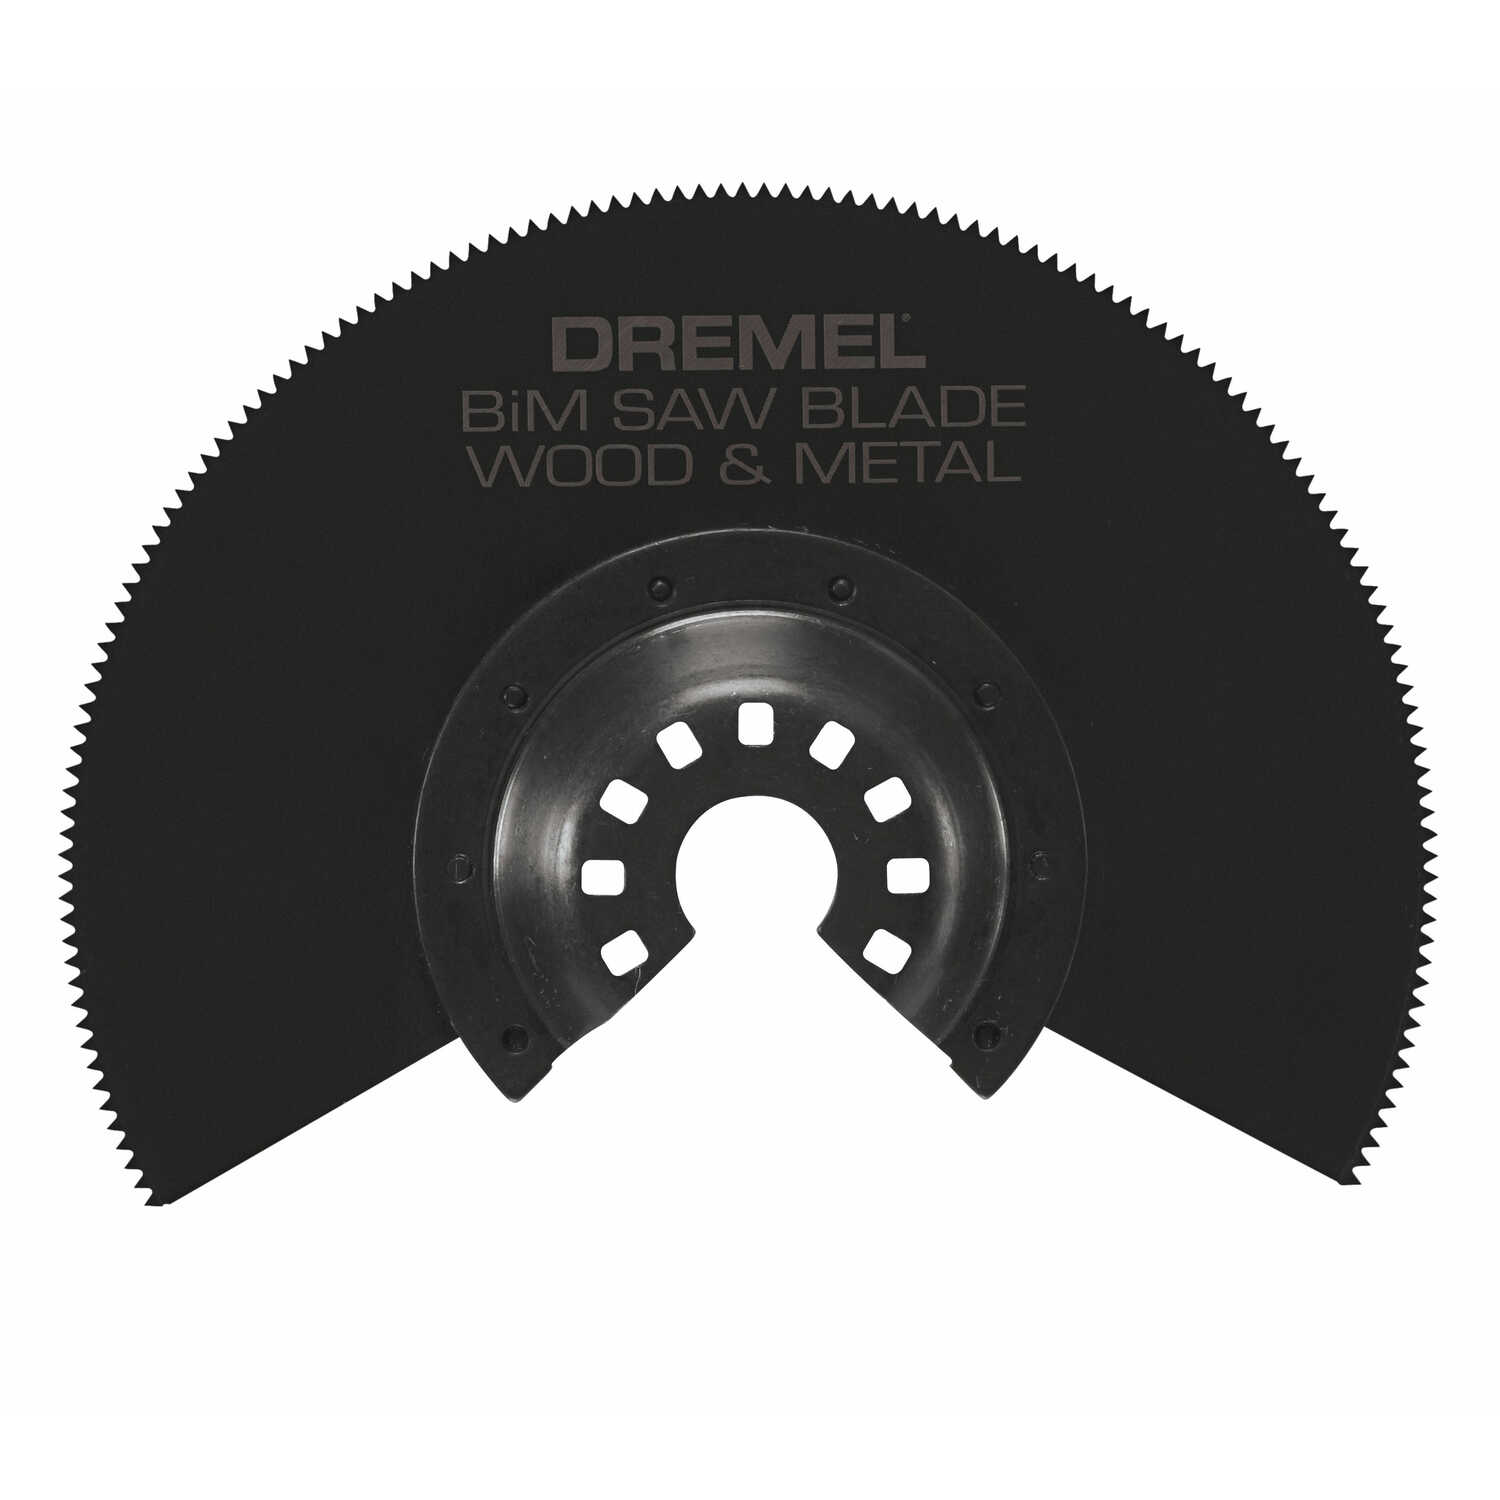 Dremel  3.5 in   x 3 in. L Bi-Metal  Drywall Saw Blade  1 pk